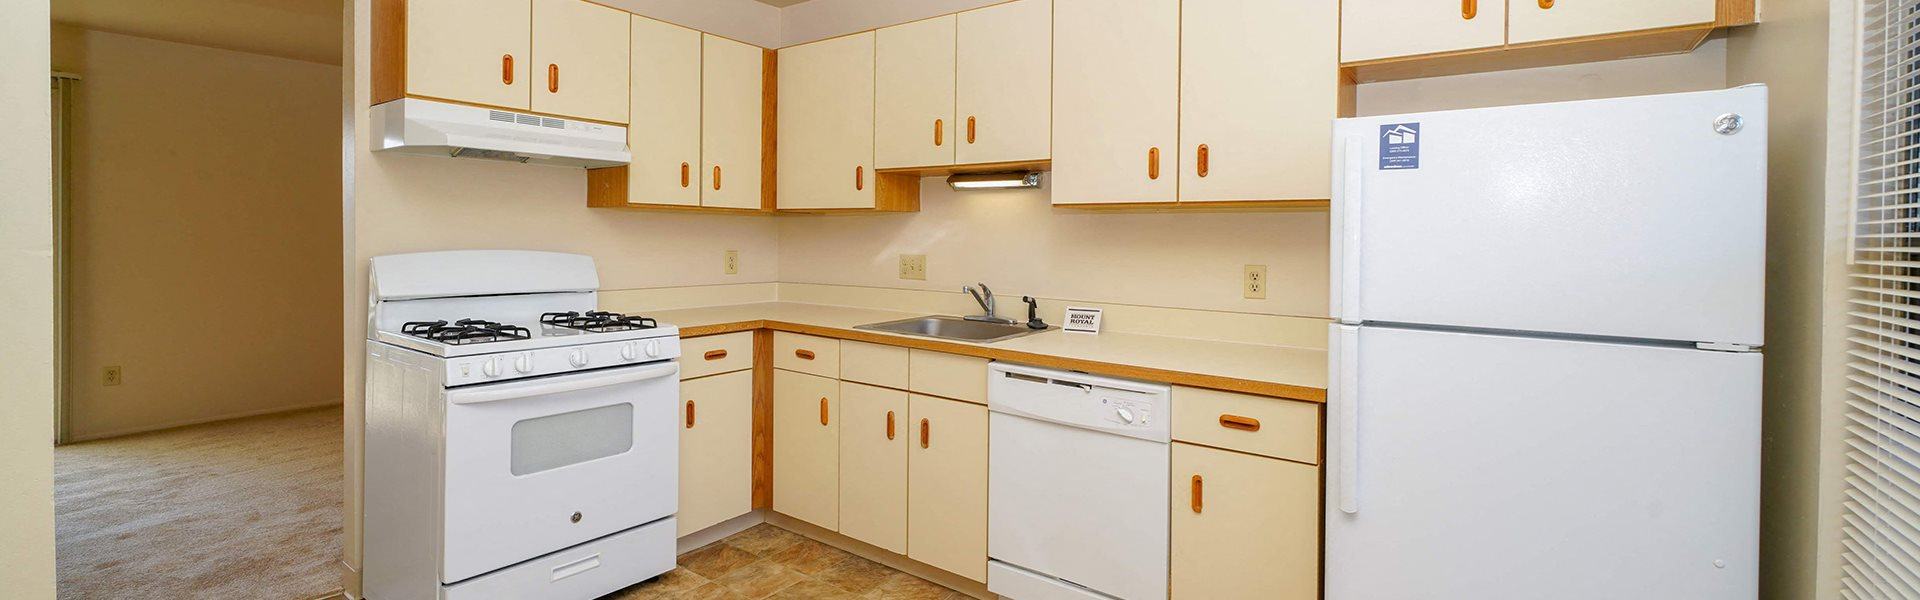 Efficient Appliances In Kitchen at Mount Royal Townhomes, Kalamazoo, MI, 49009